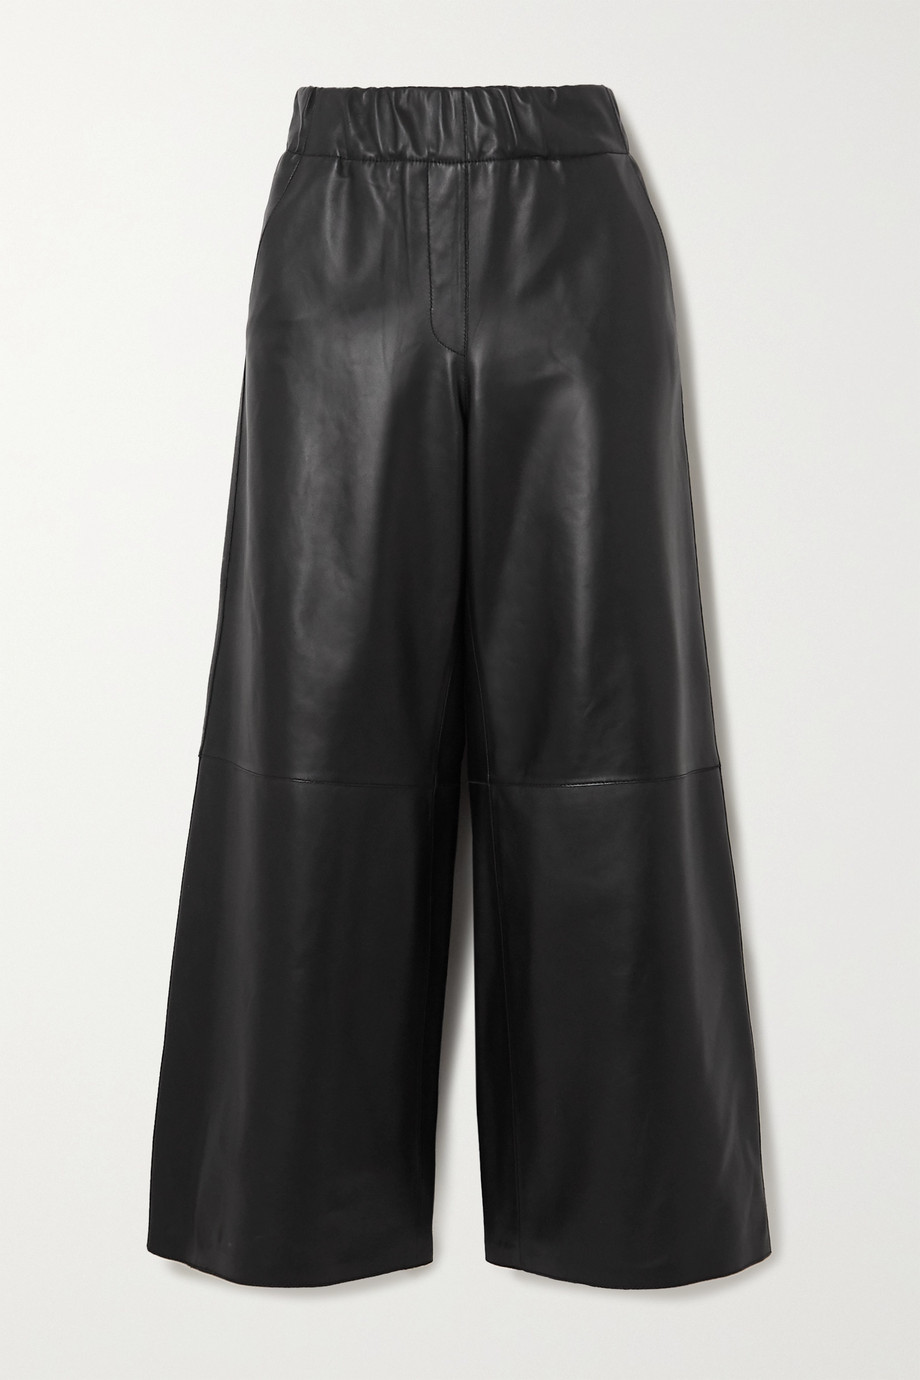 Loewe Leather wide-leg pants